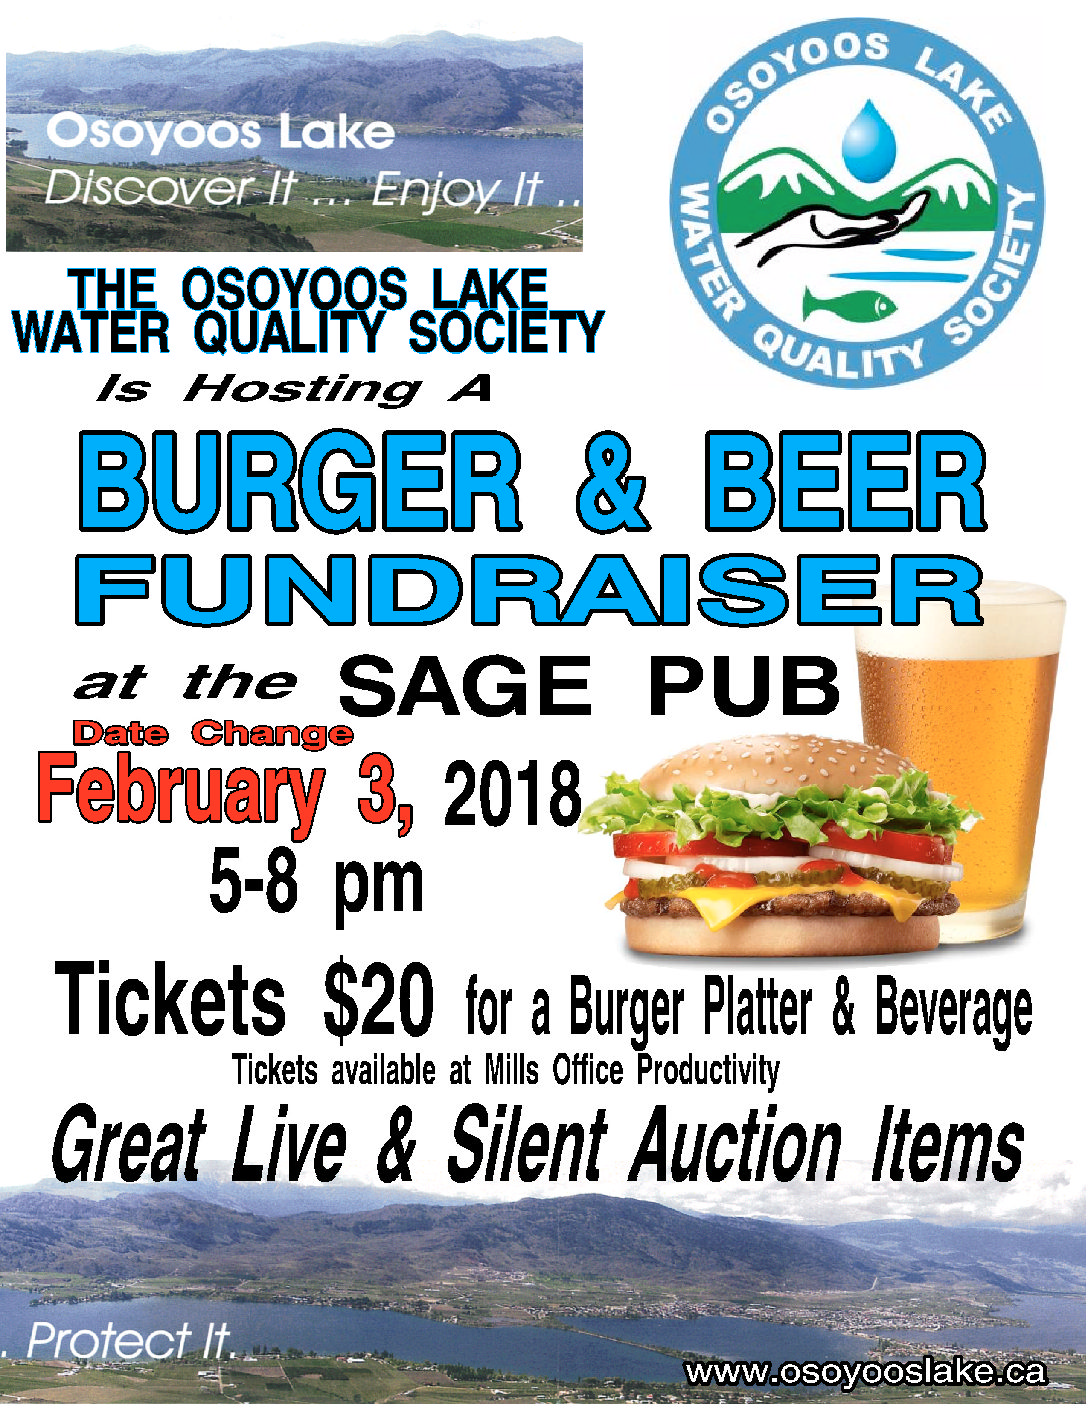 Annual Burger & Beer Fundraiser Feb 3rd, 5-8 PM Sage Pub, Osoyoos